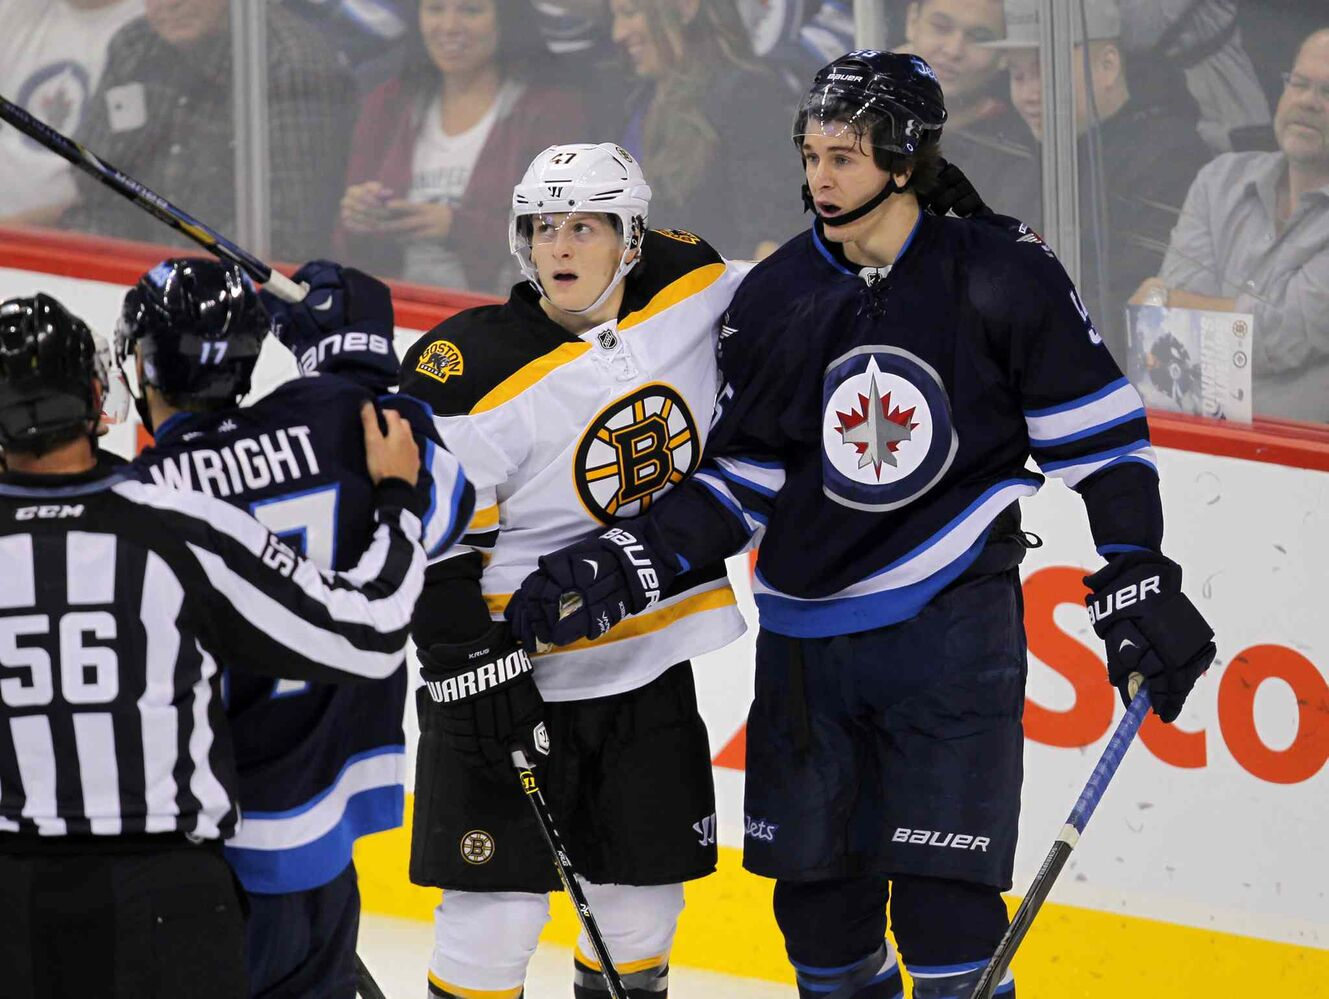 Mark Scheifele and Torey Krug get tangled up.